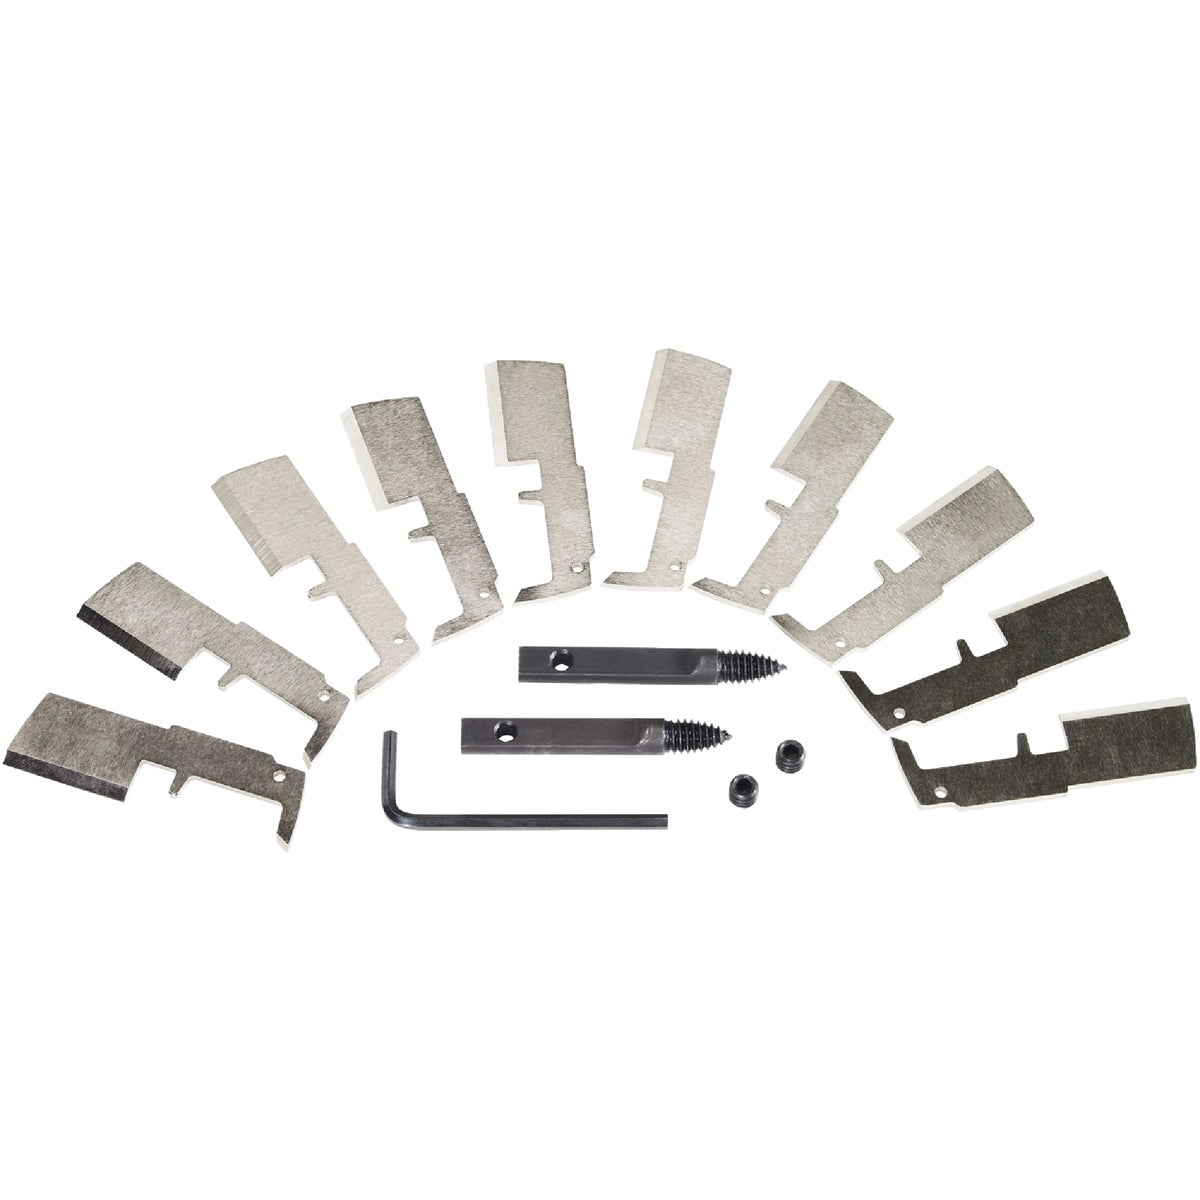 "10PK 1-1/2"" SWITCHBLADES - 48-25-5320 by Milwaukee Accessory"